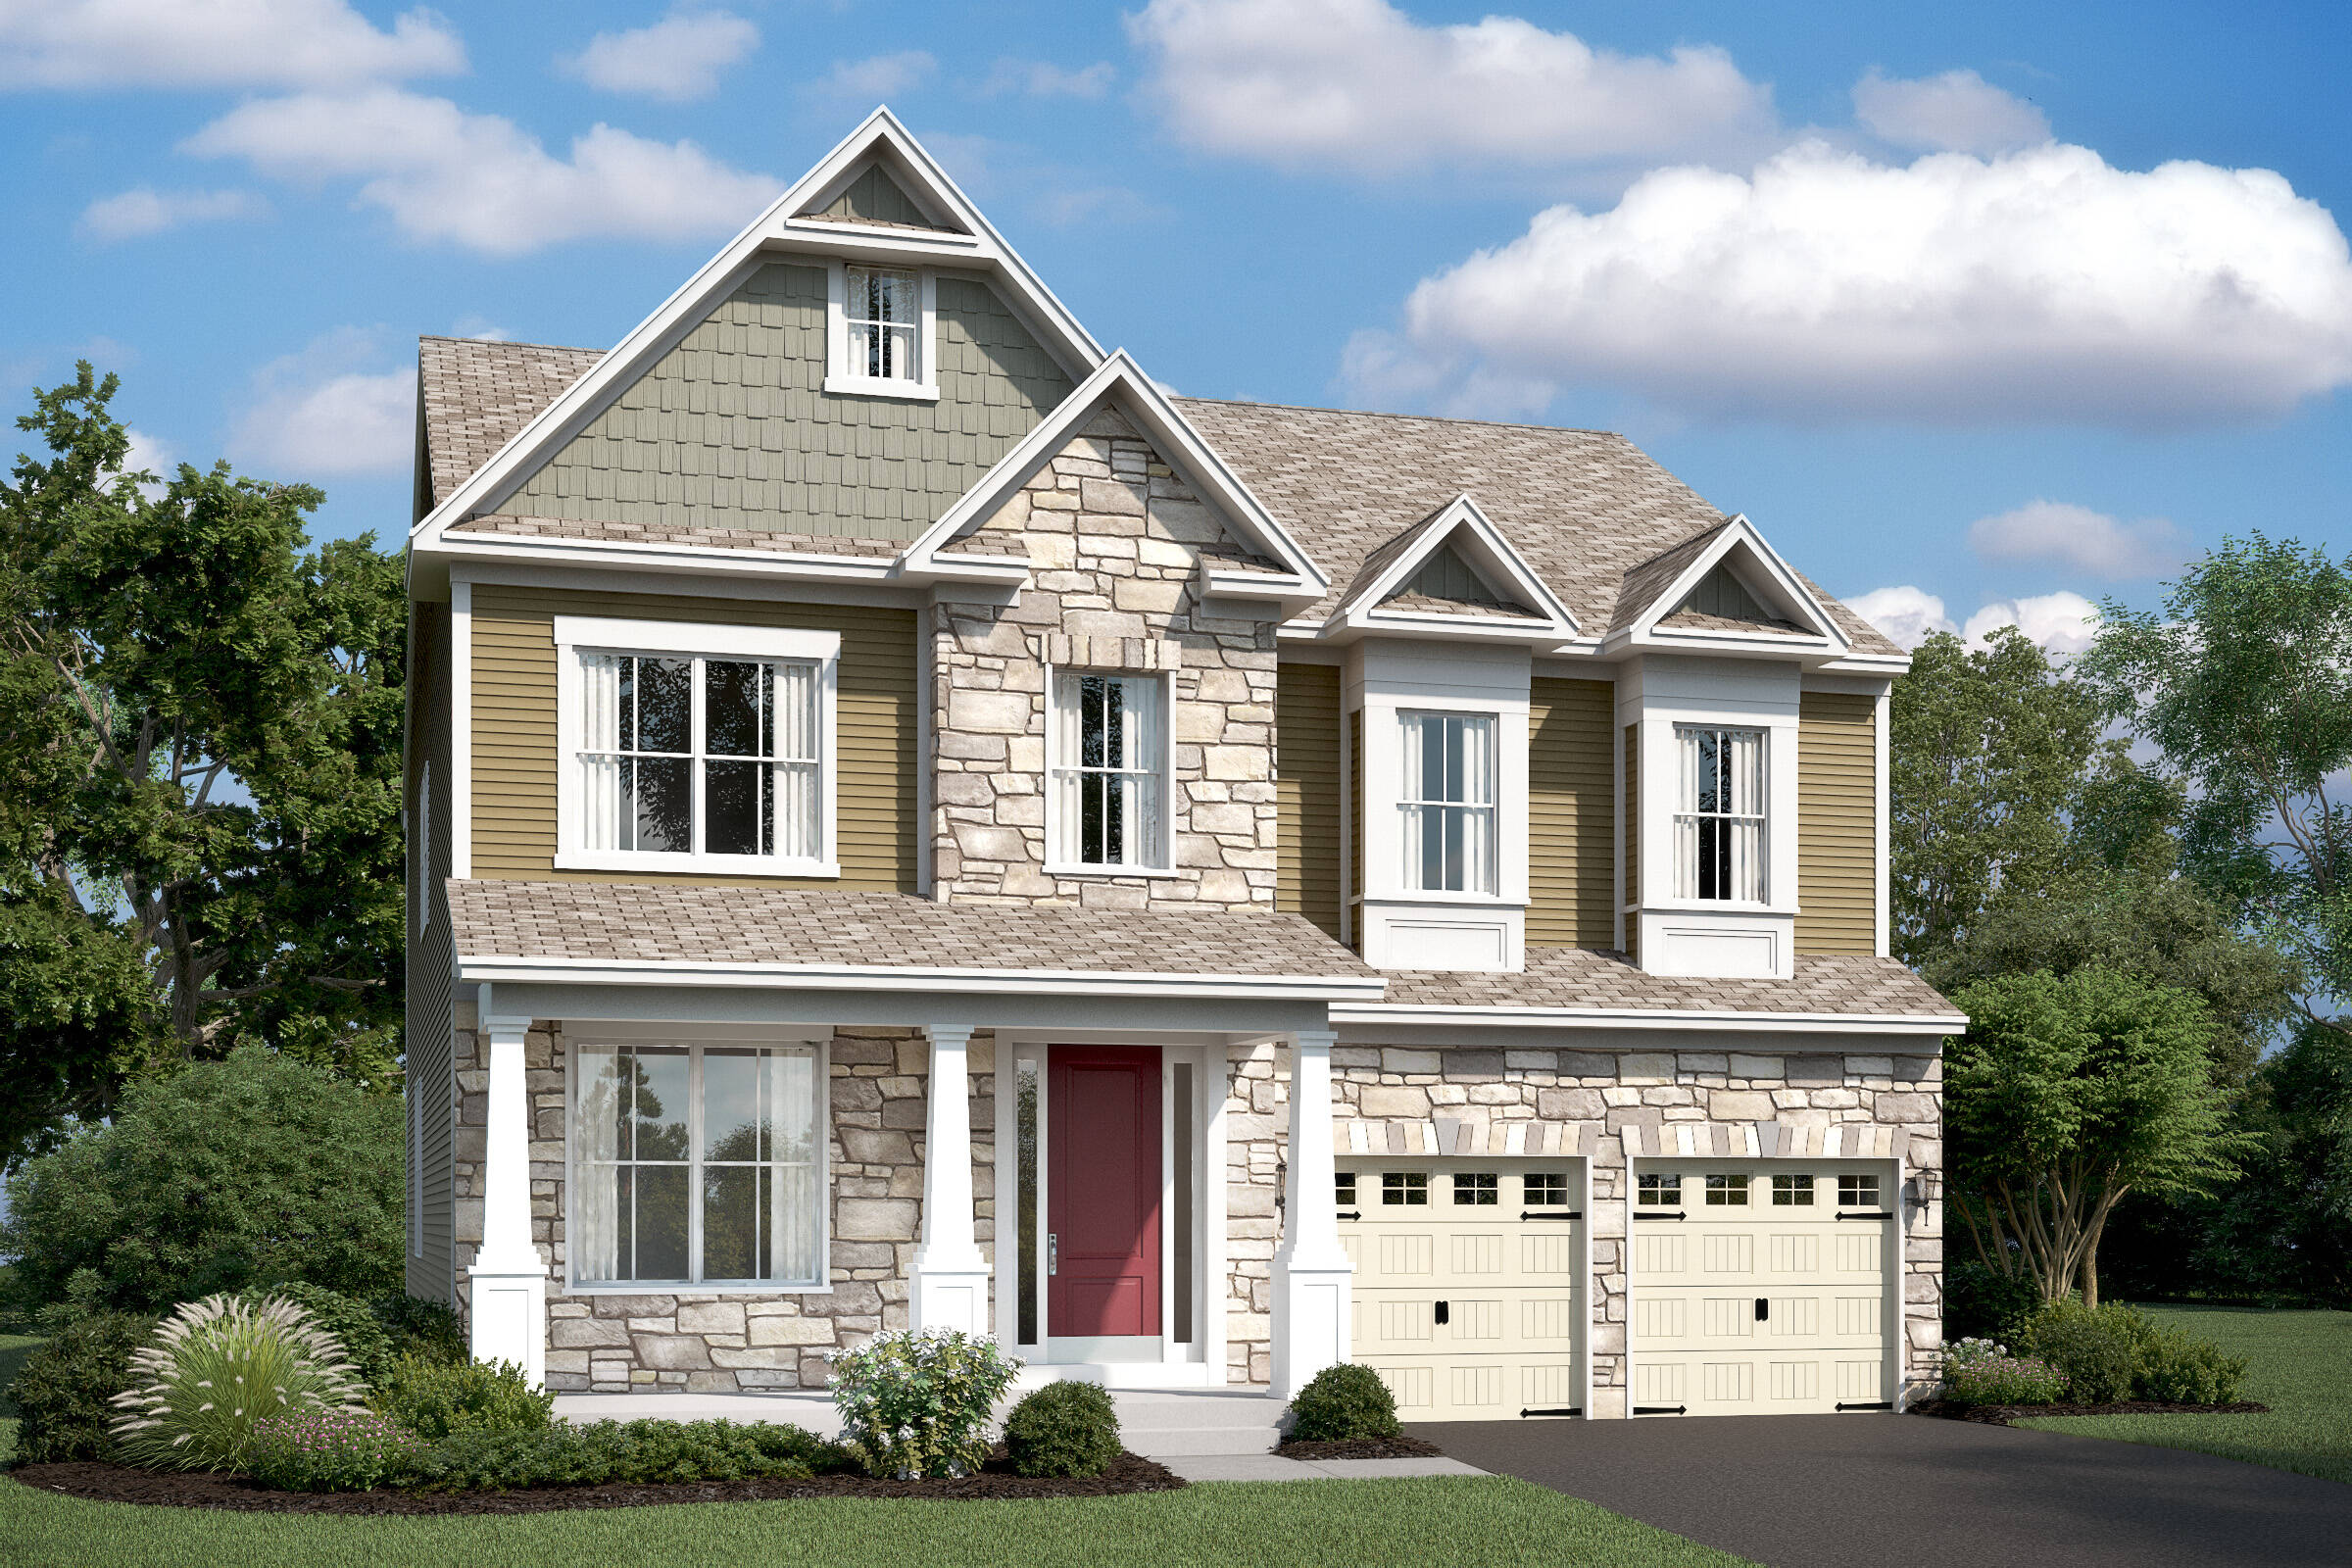 callahan II e new homes at stone mill in maryland